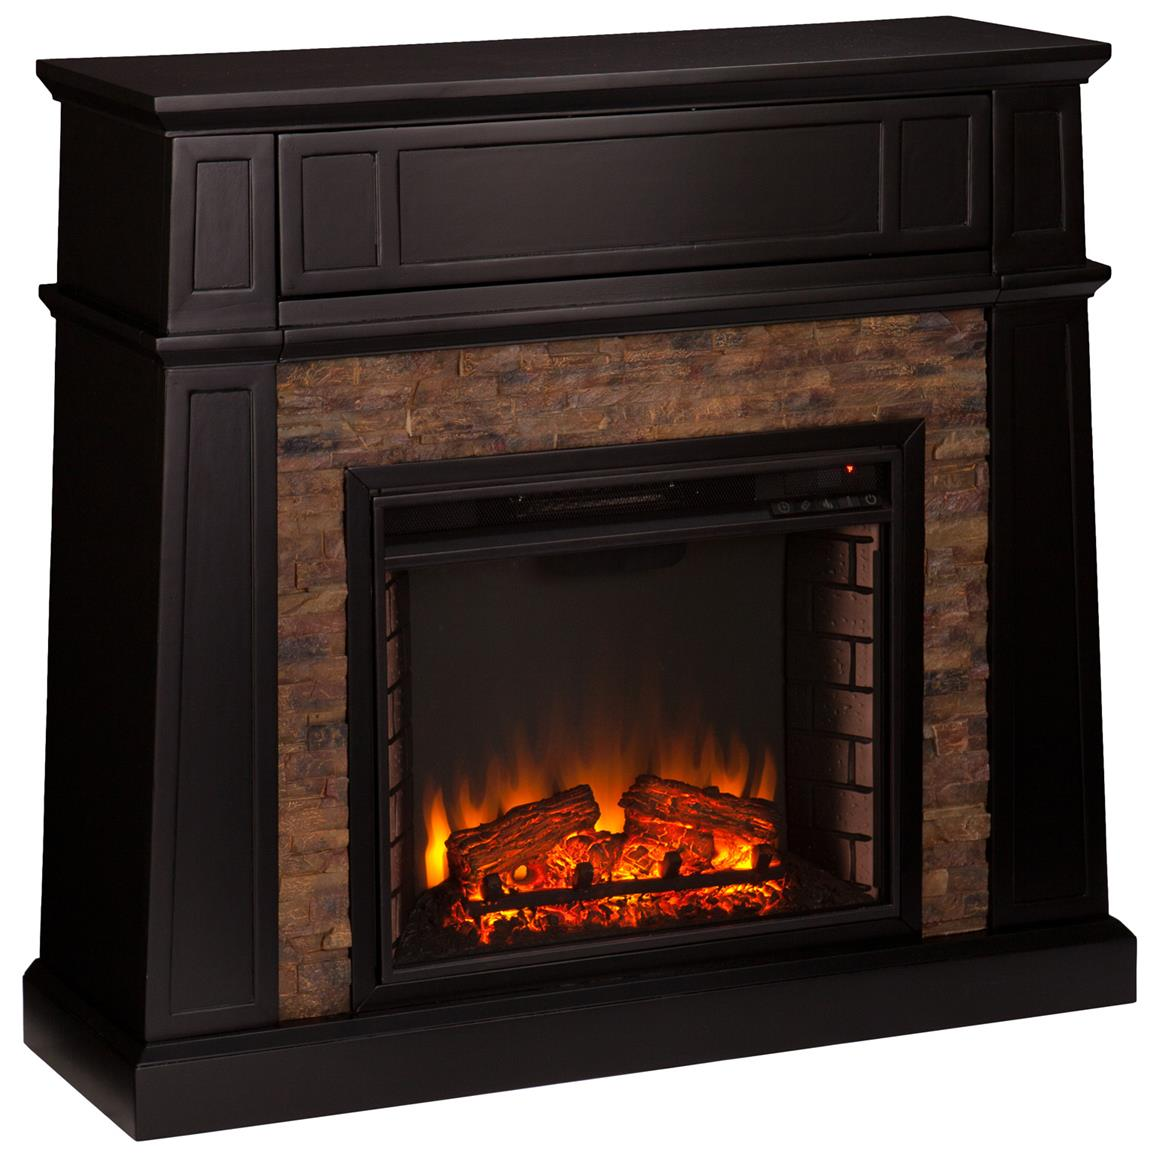 Southern Enterprises Crestwick Faux Stone Electric Media Fireplace, Black